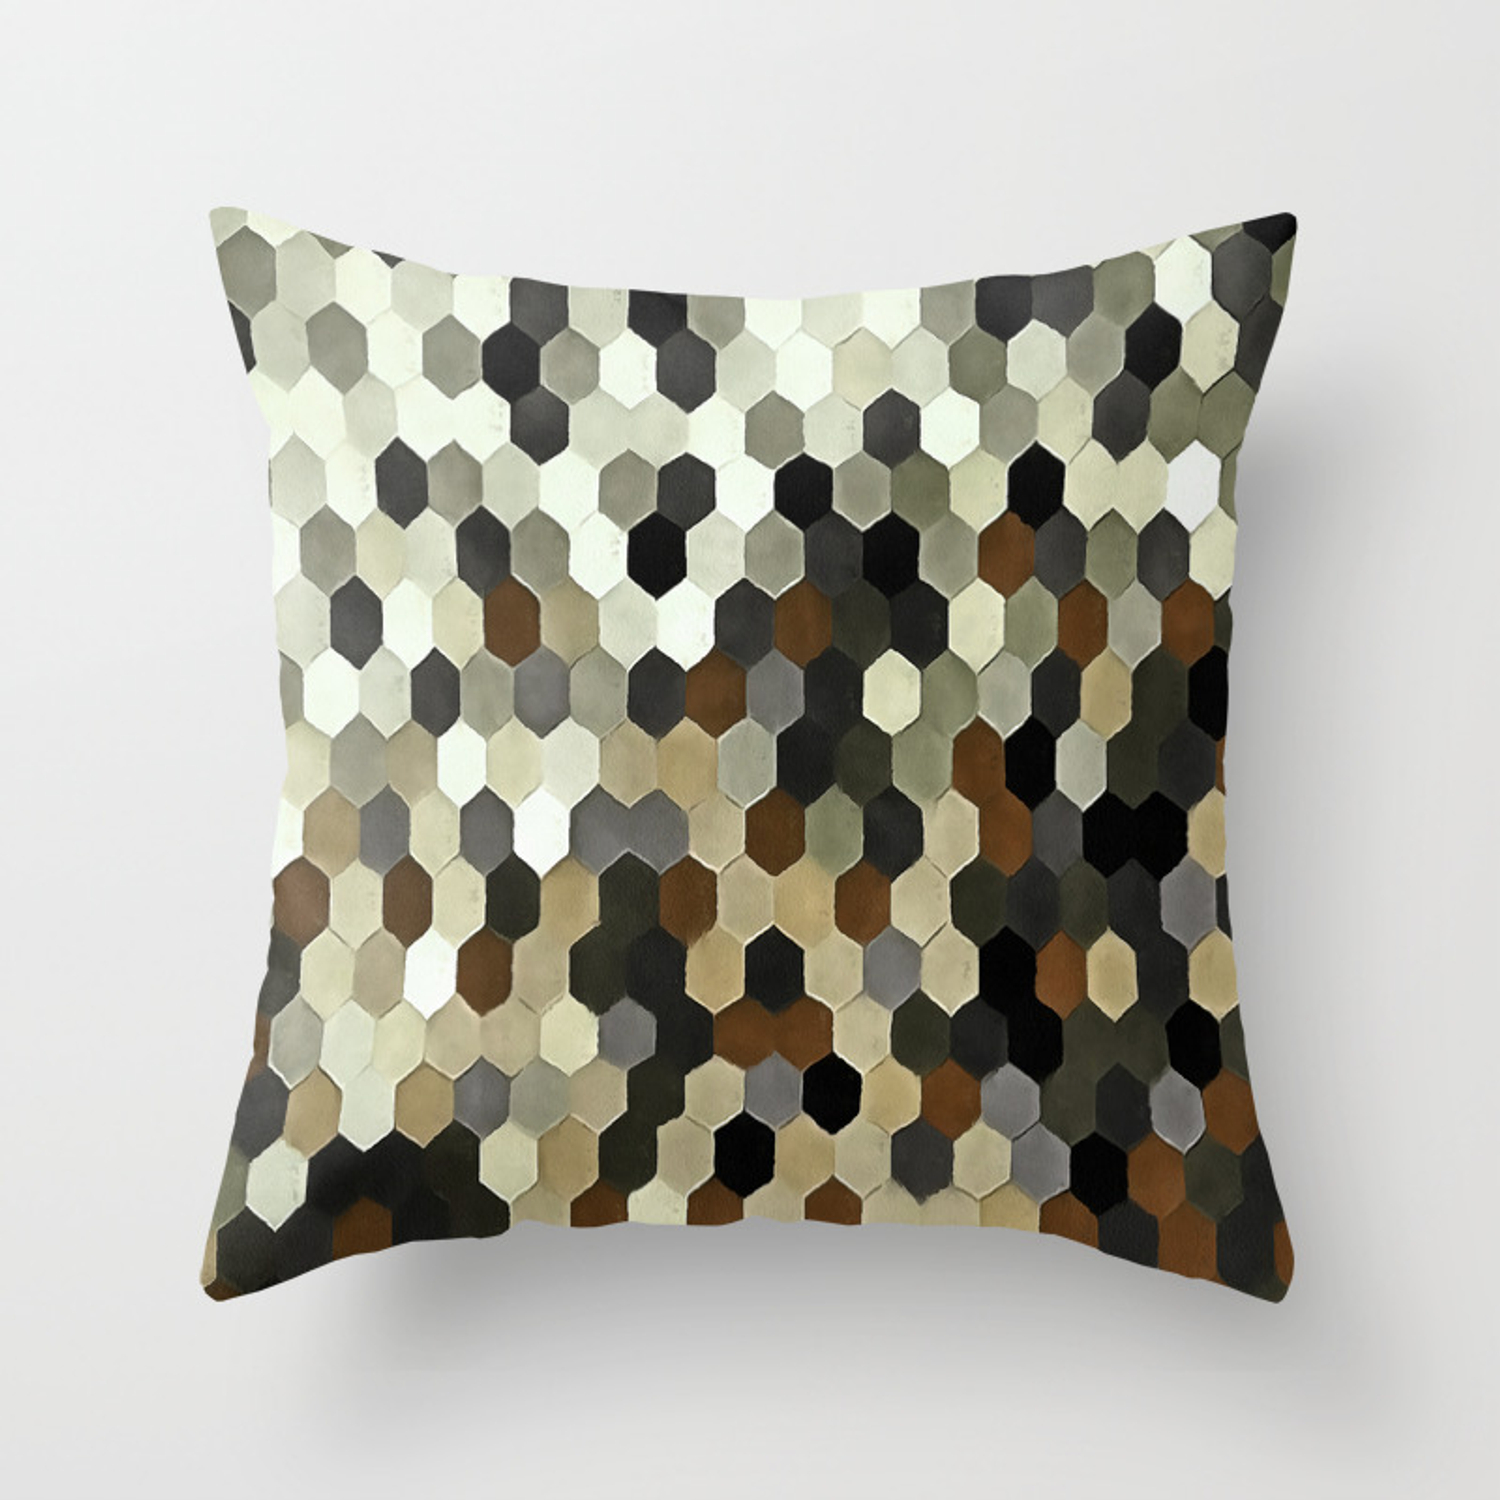 Earth Tone Throw Pillows.Honeycomb Pattern In Neutral Earth Tones Throw Pillow